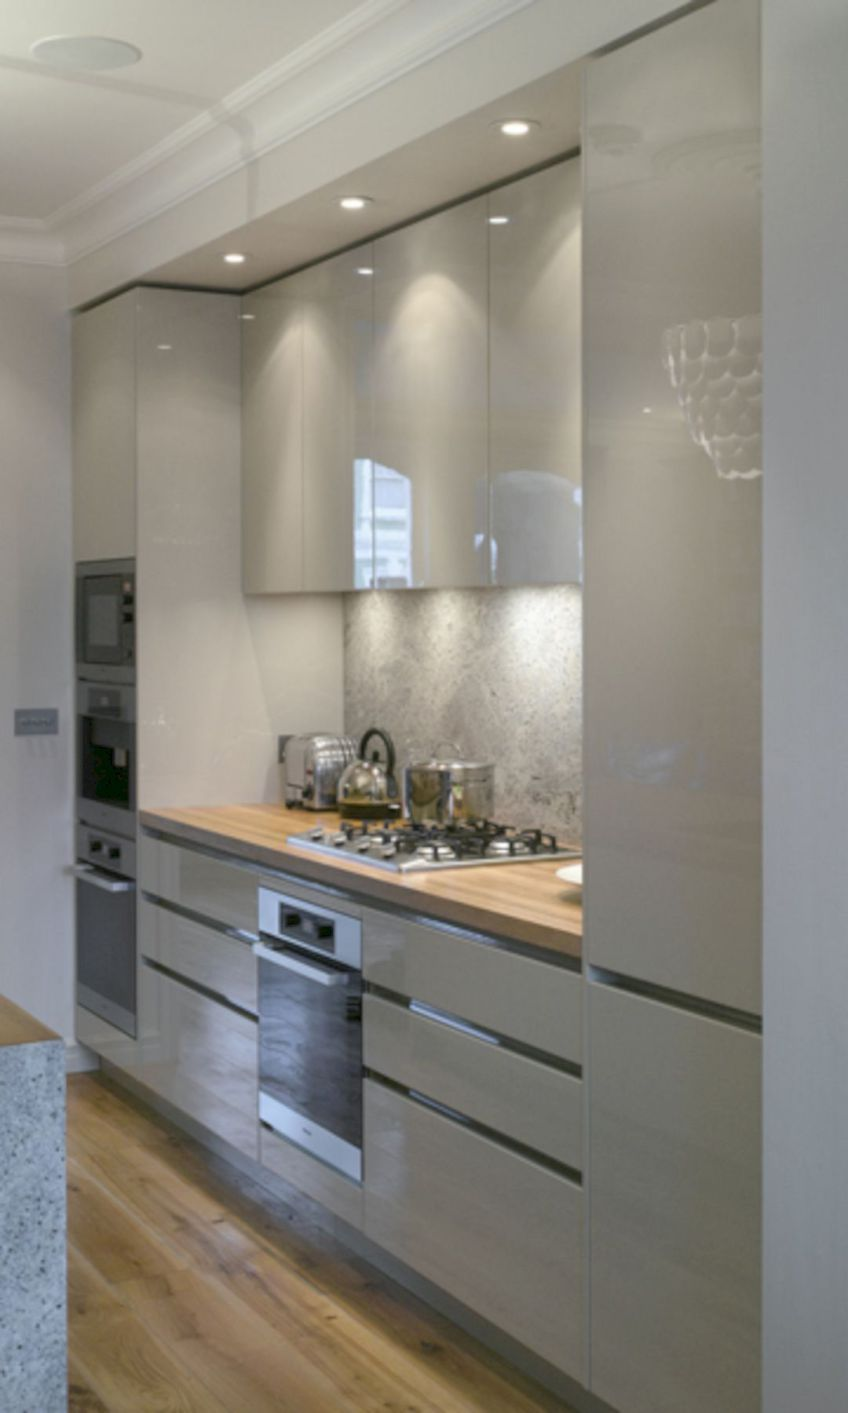 A Guide To Efficient Small Kitchen Design For Apartment Kitchen Design Small Interior Design Kitchen Kitchen Design Efficient small kitchen design